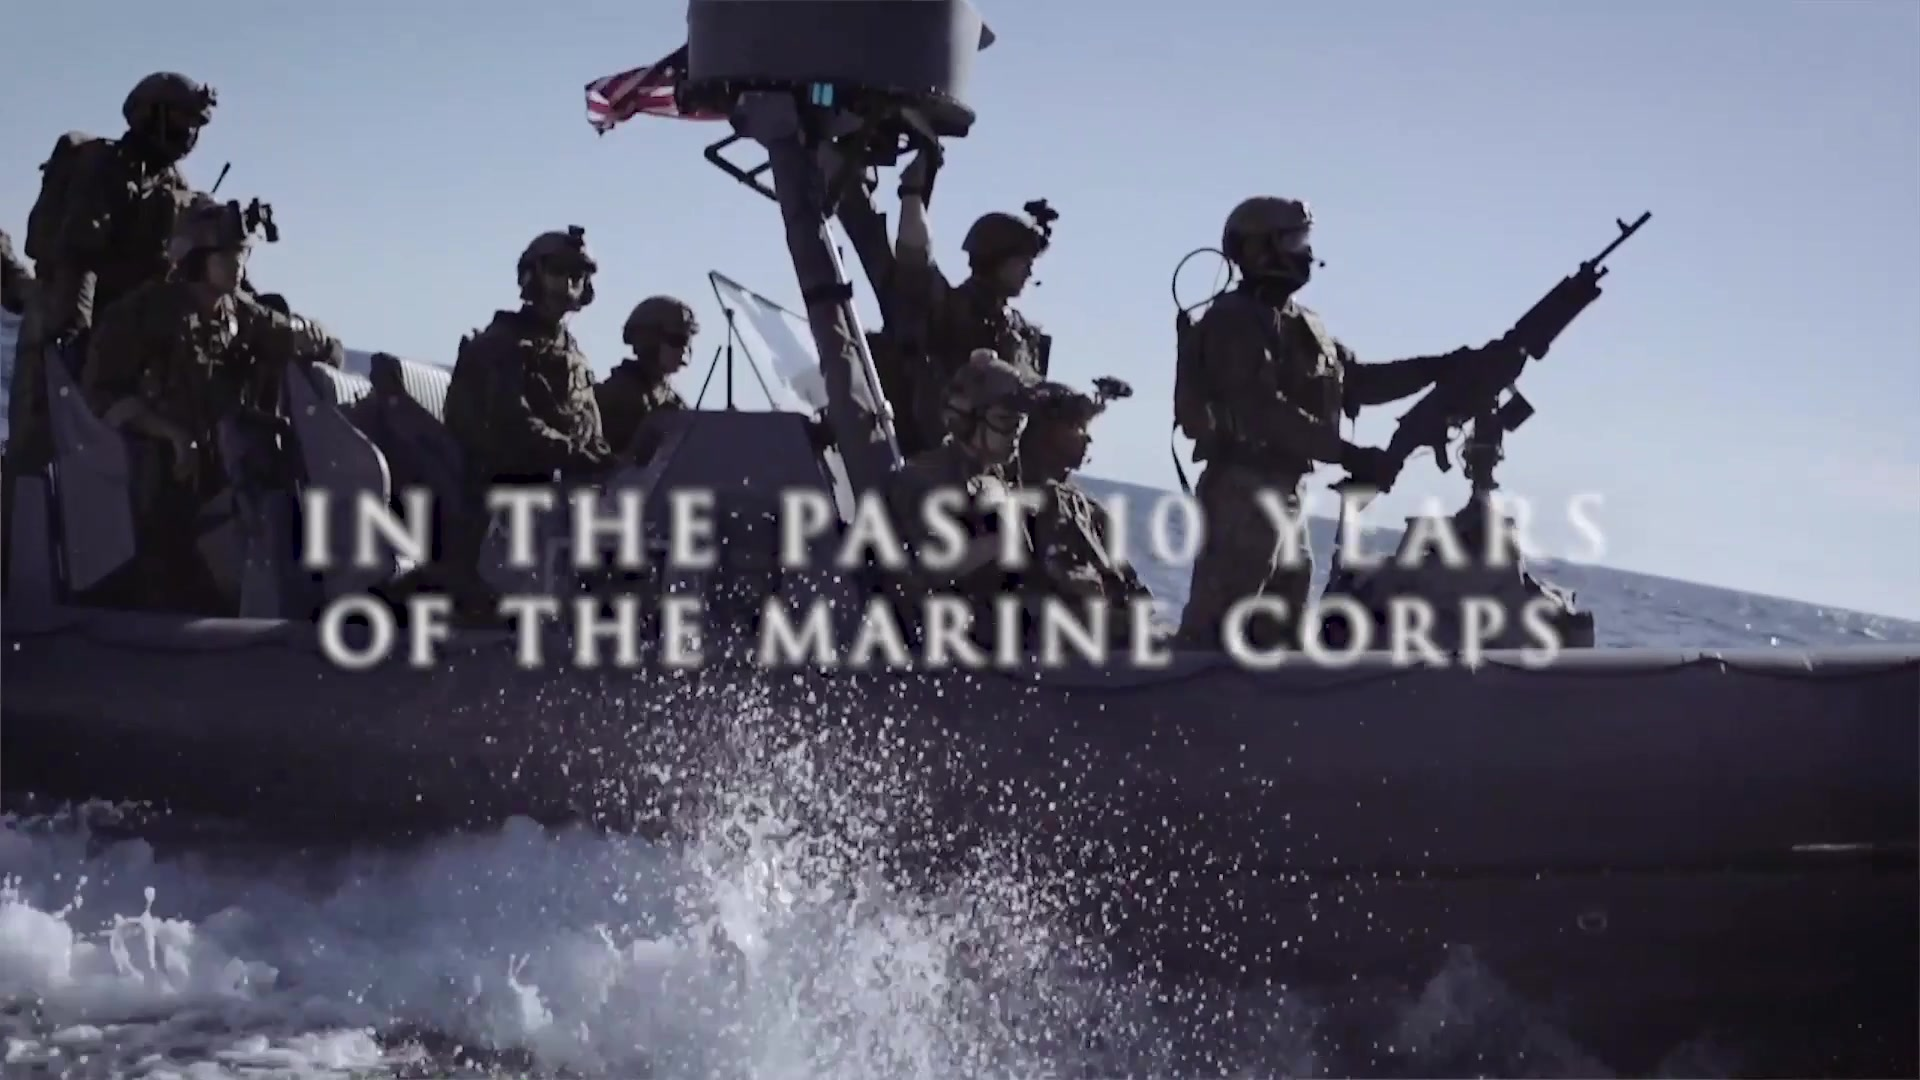 A look at some of the events that defined in the Marine Corps in the 2010s.